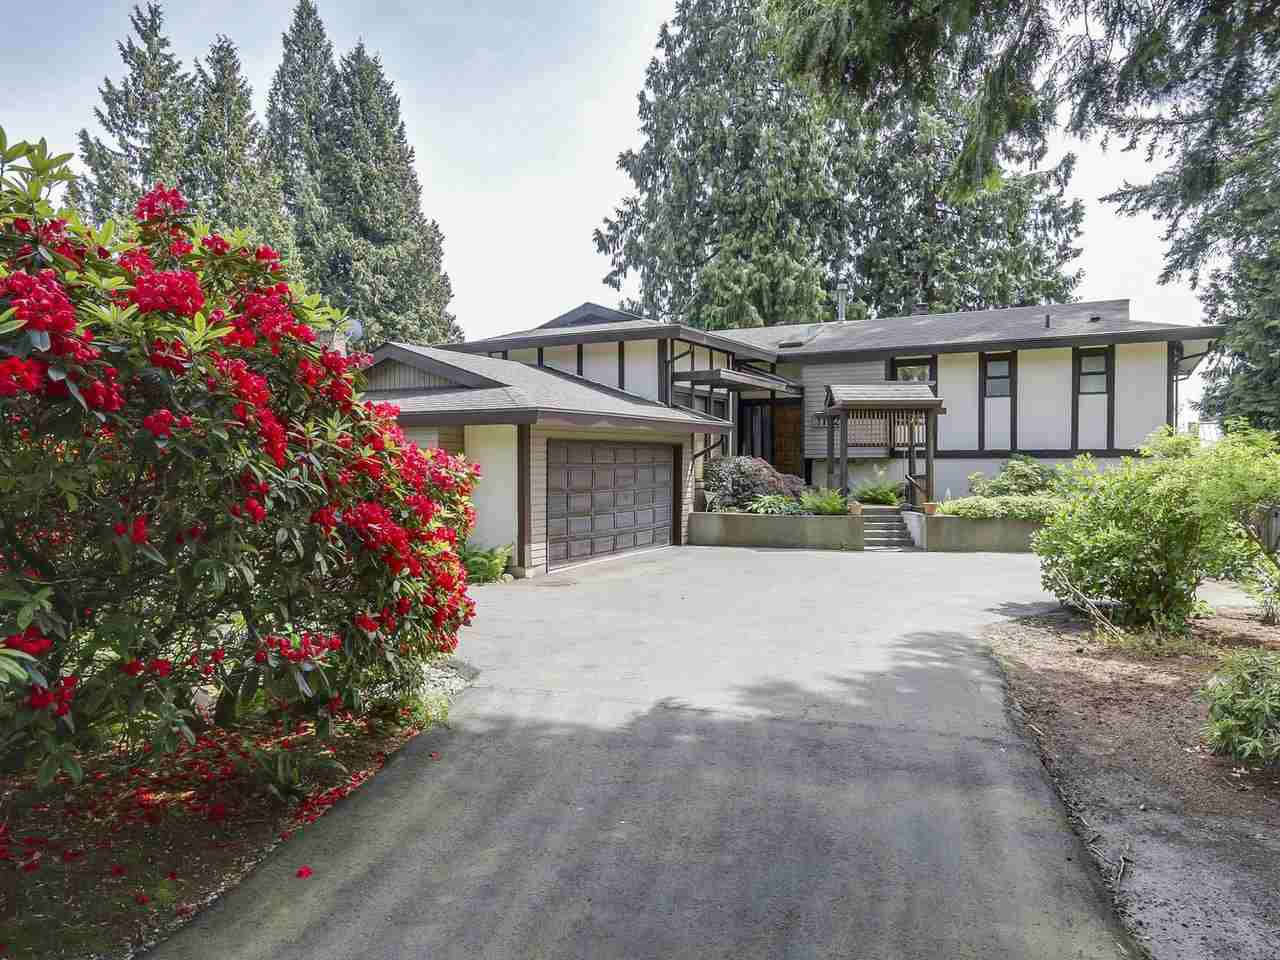 Main Photo: 1112 FOSTER Avenue in Coquitlam: Central Coquitlam House for sale : MLS®# R2175801